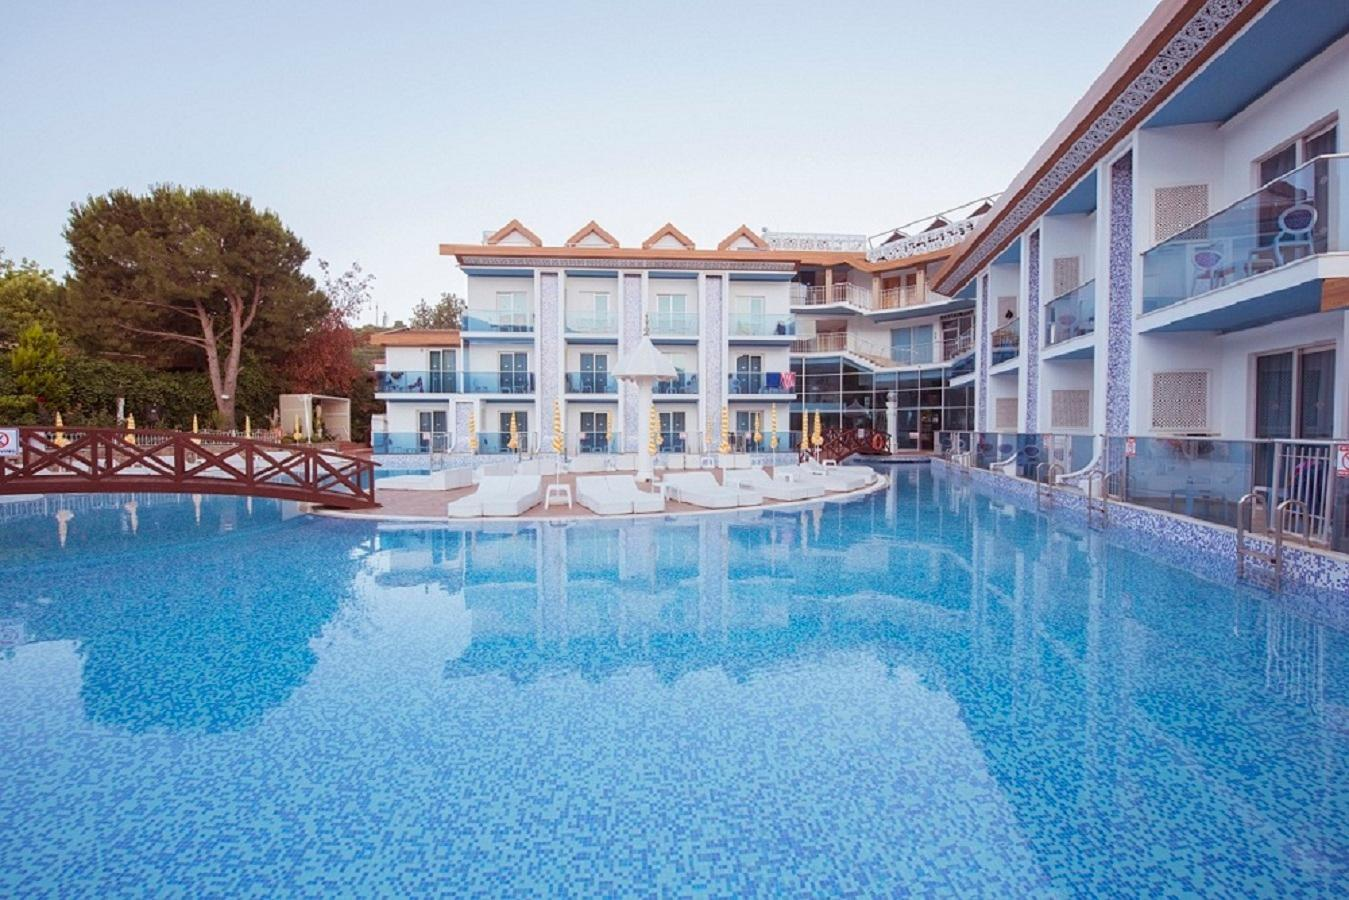 Ocean Blue High Class Hotel in Hisaronu, Dalaman, Turkey